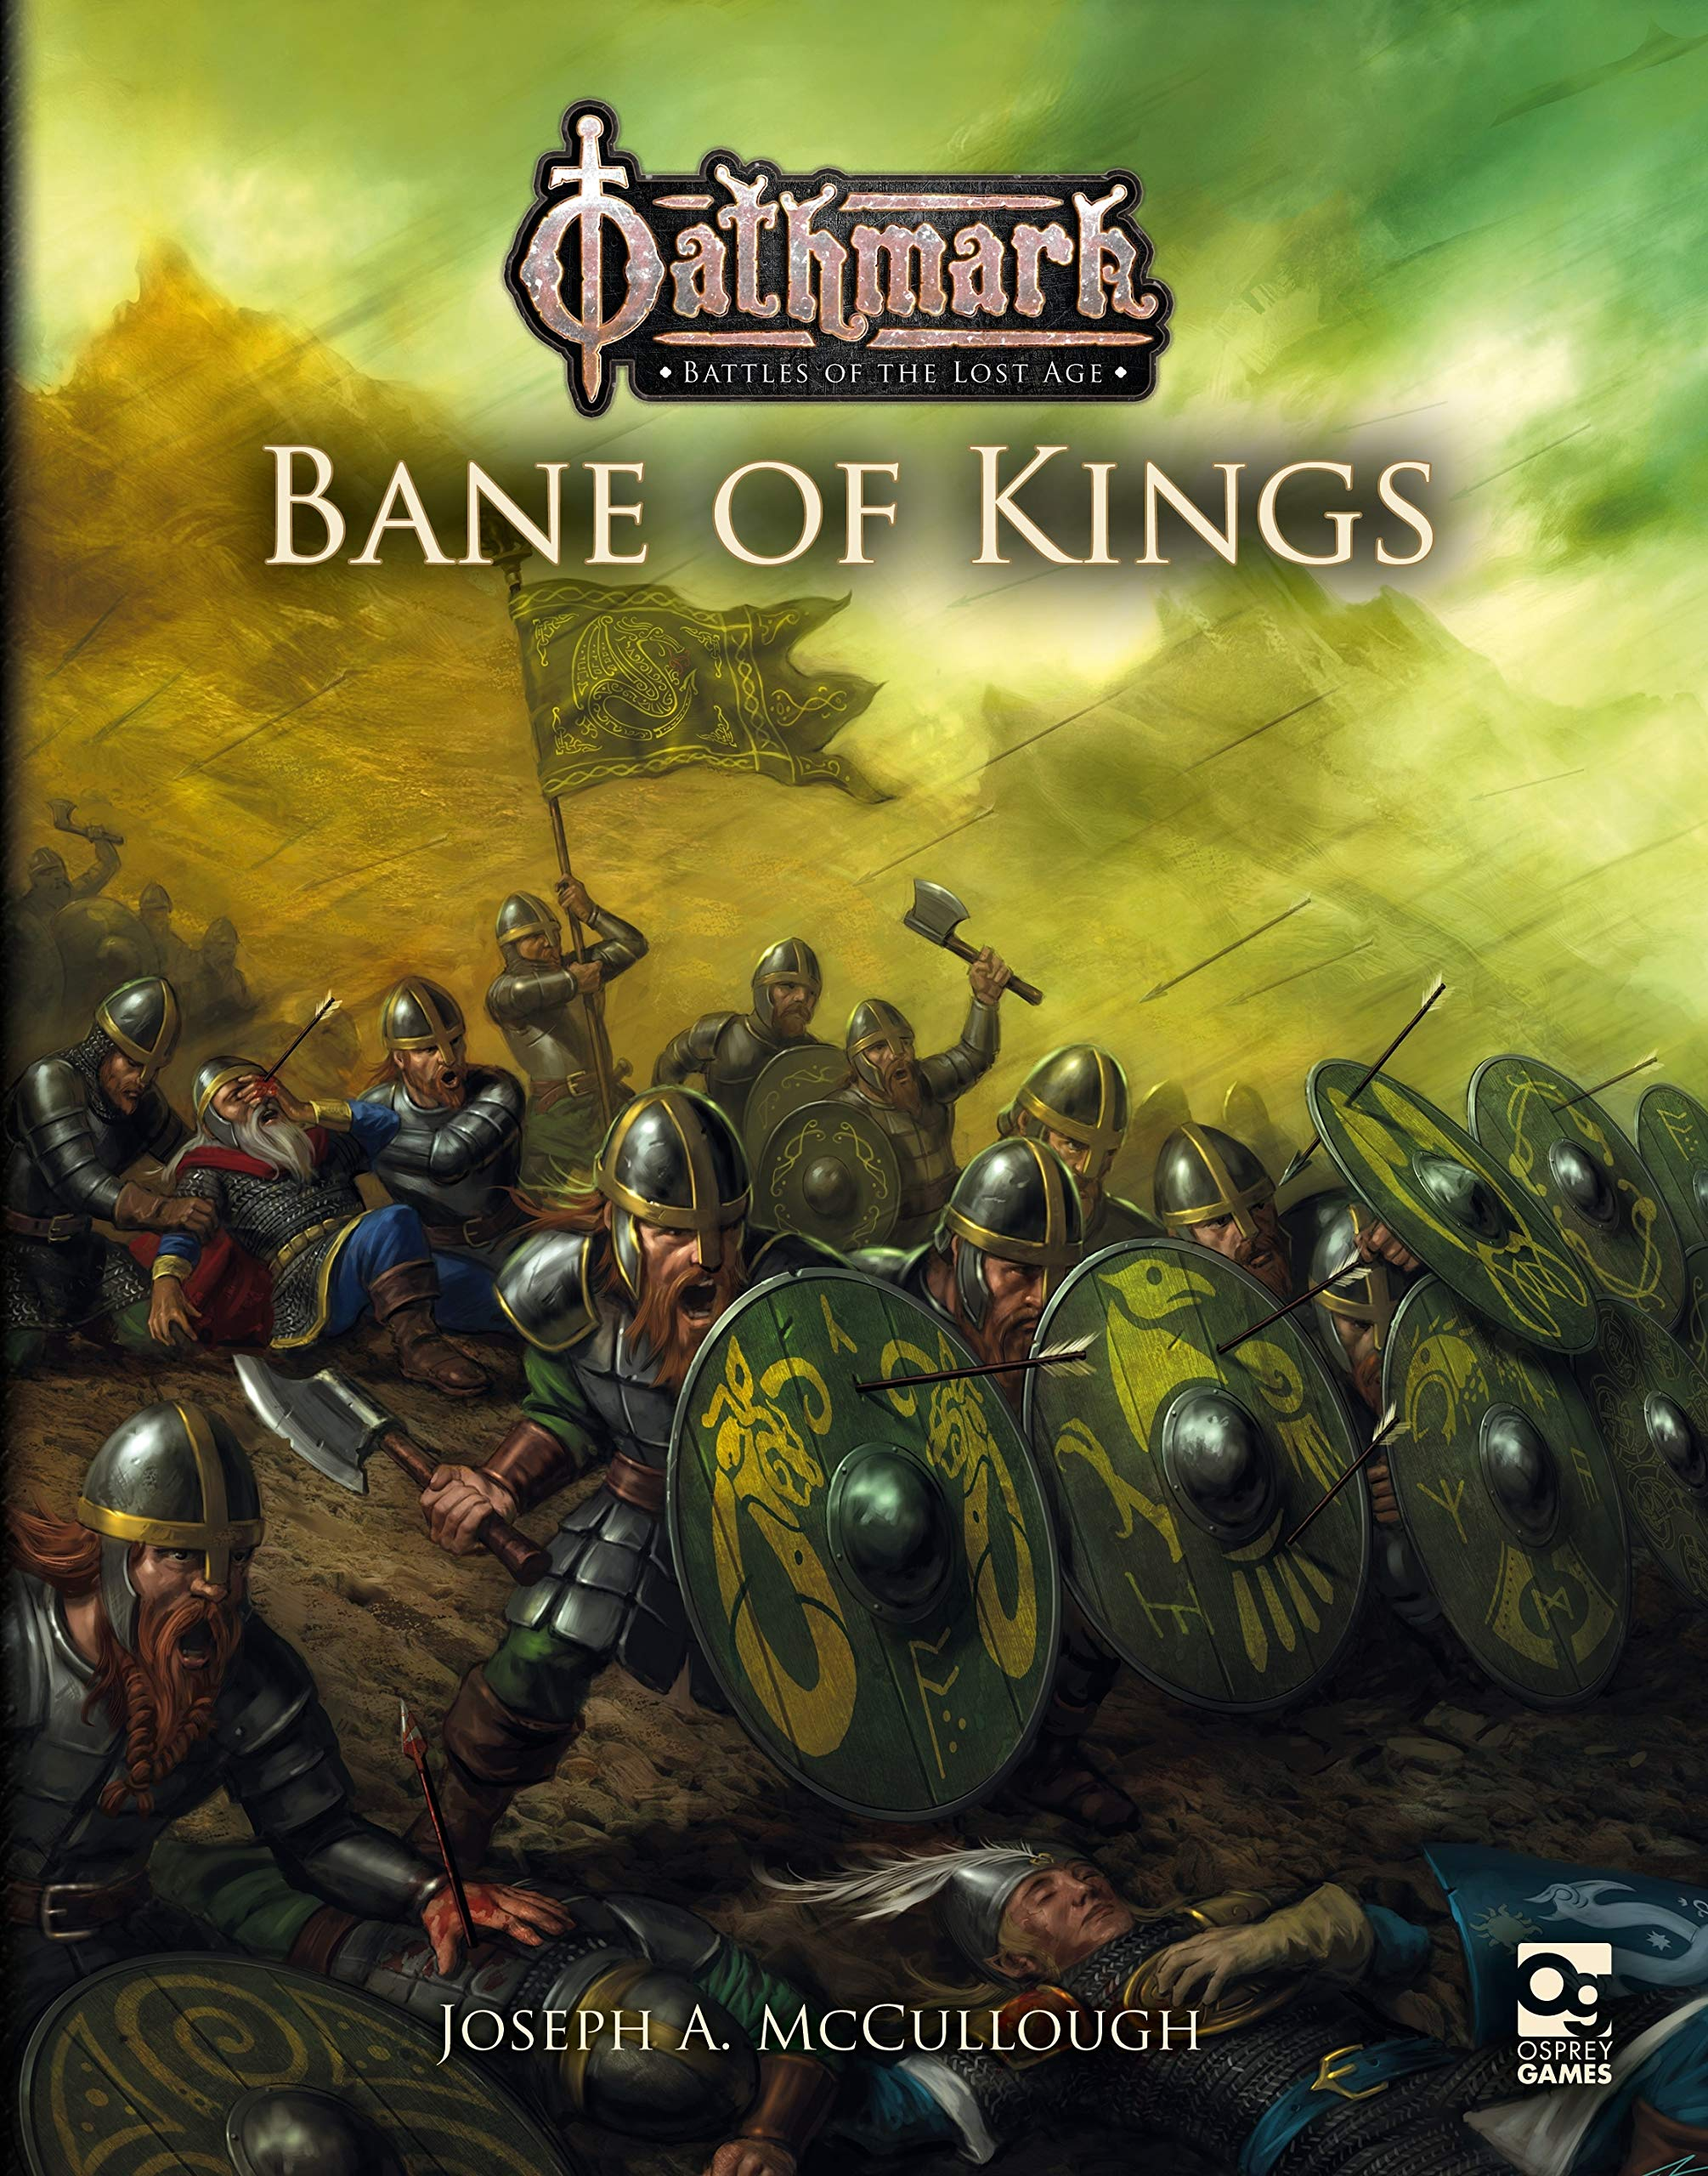 Bane Of Kings - Oathmark Battles Of The Lost Age